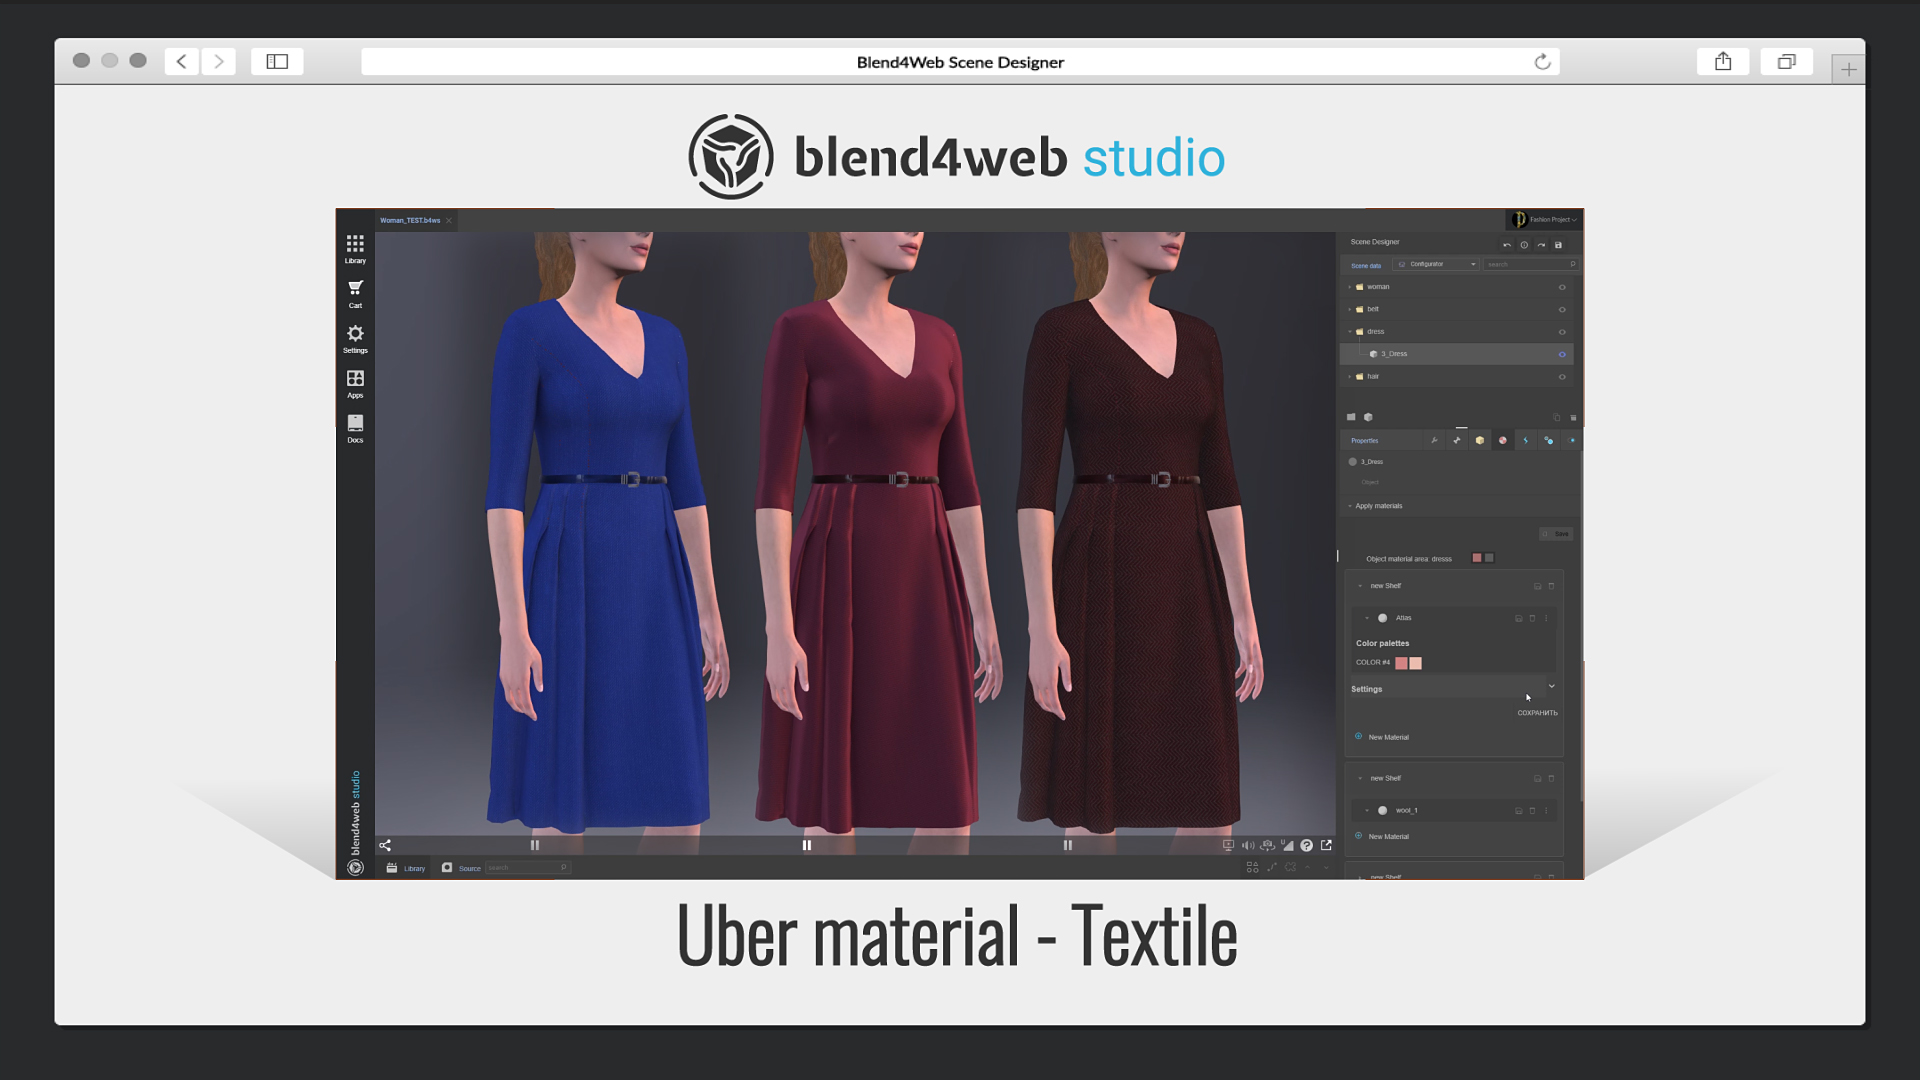 Blend4Web Studio: Uber material Textile - weaves, seams, imperfections, fluffiness